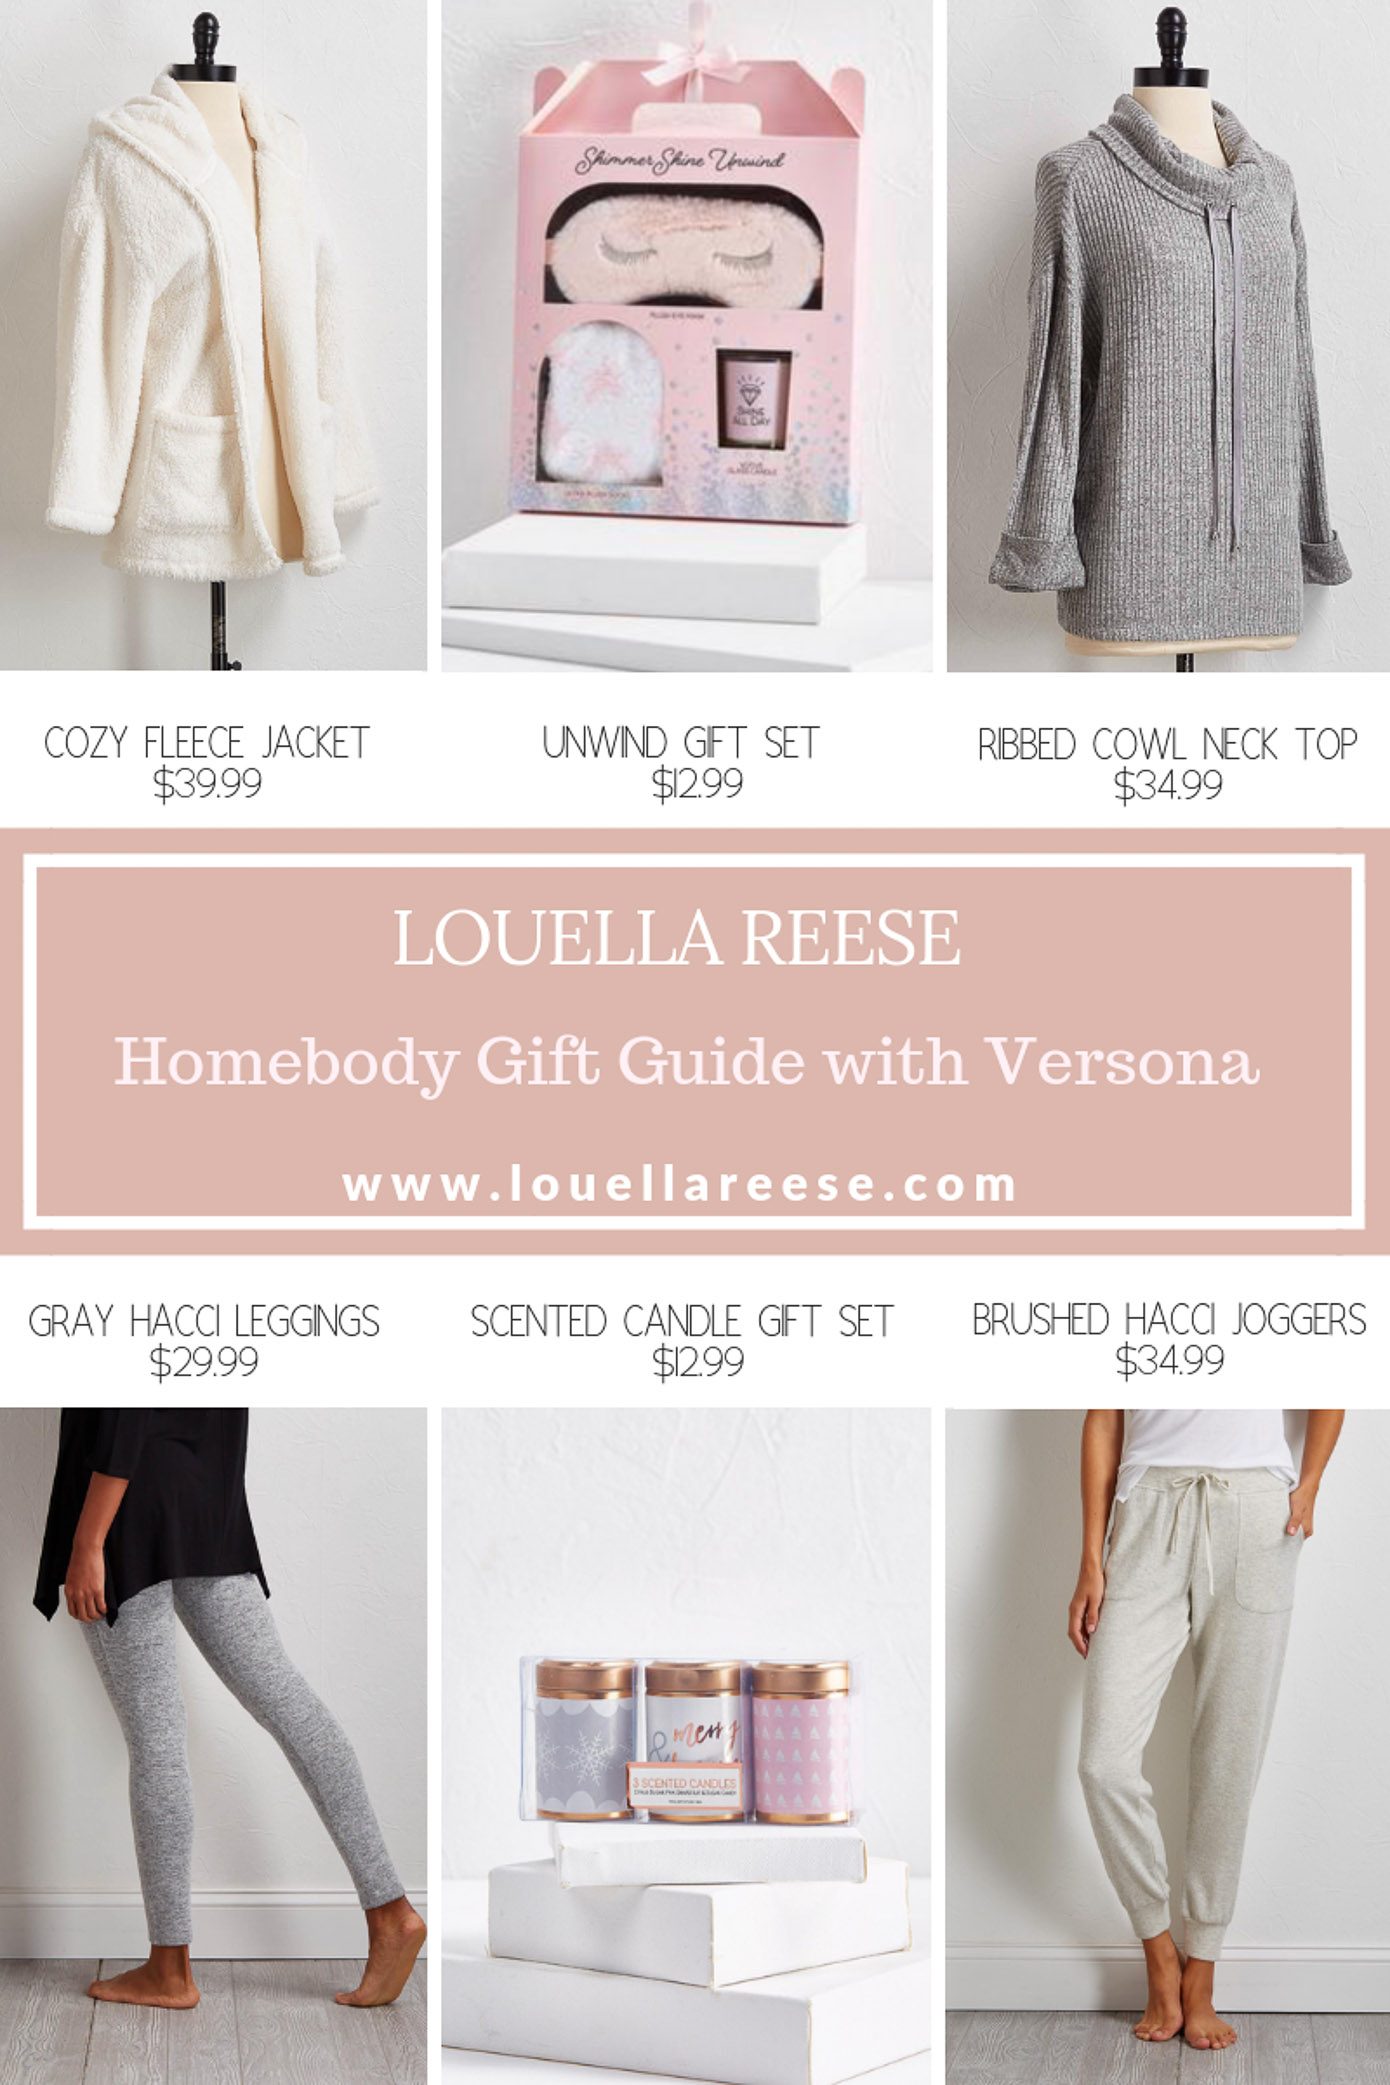 Homebody Gift Guide | Gifts for a Homebody featured on Louella Reese